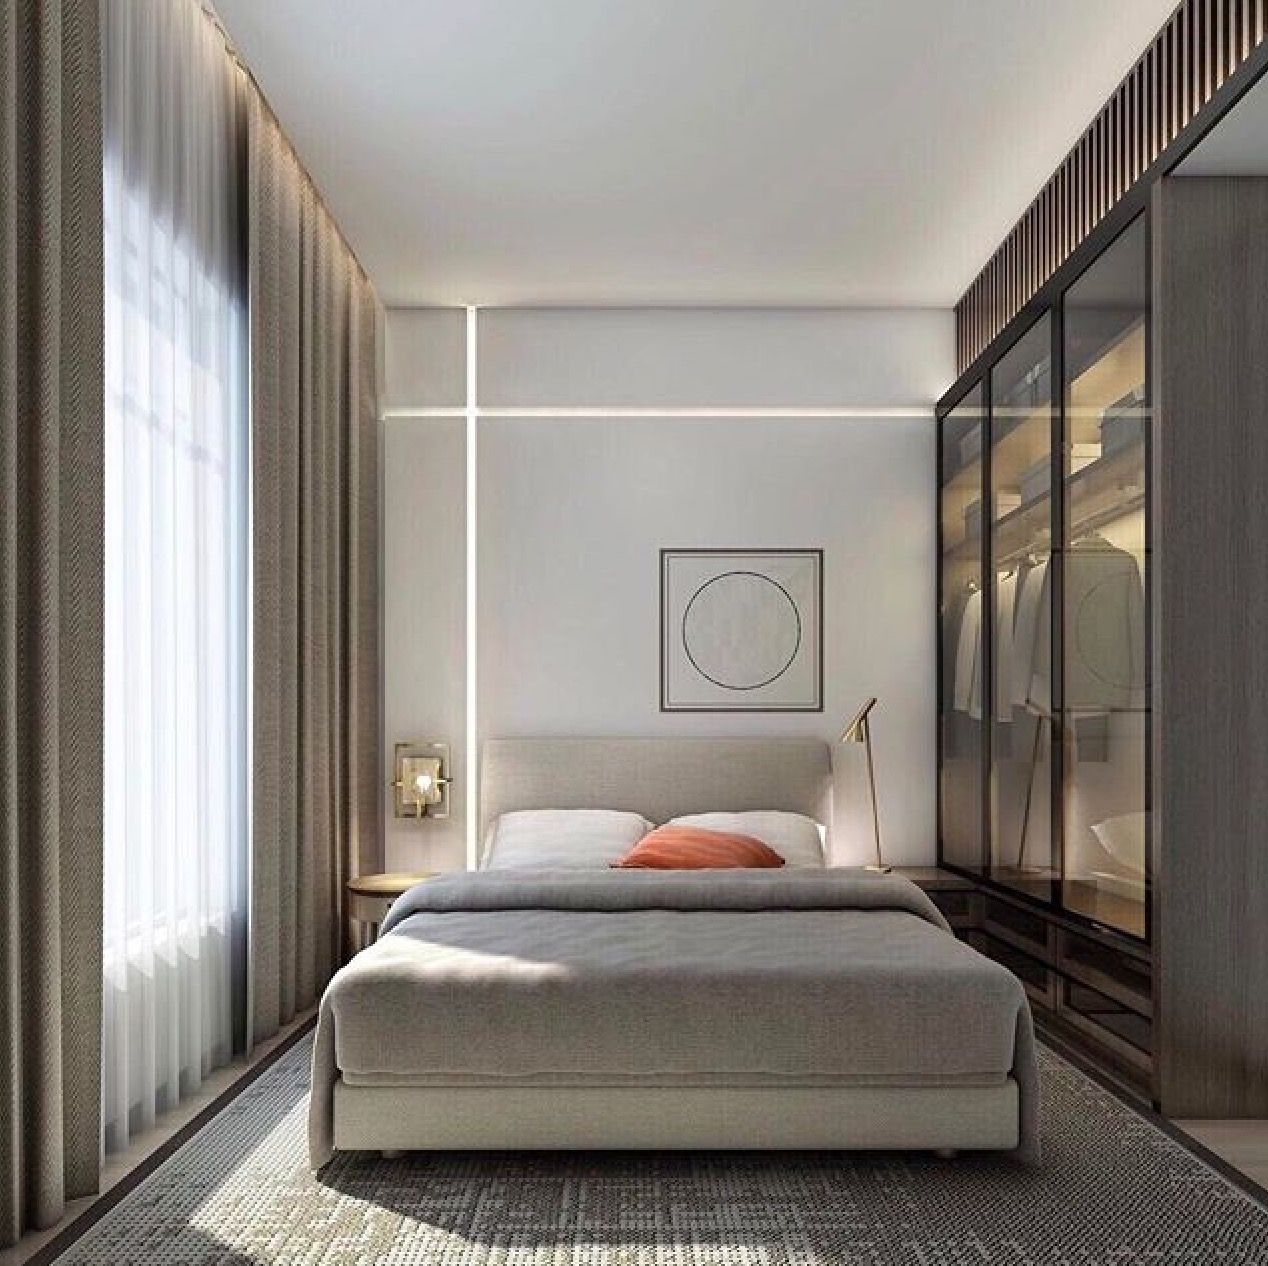 Bedroom  Bedrooms in 2019  Modern bedroom design